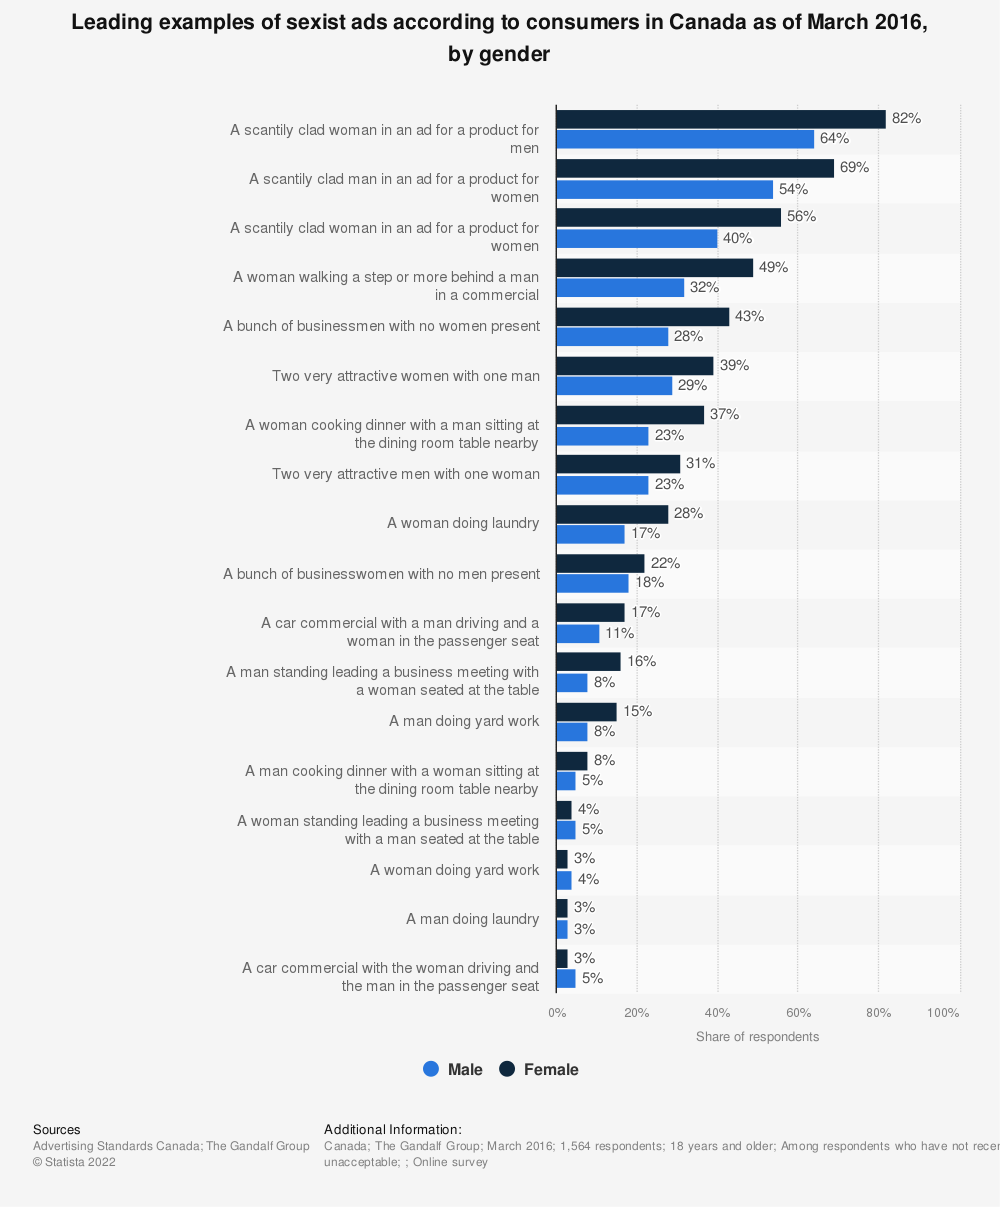 Statistic: Leading examples of sexist ads according to consumers in Canada as of March 2016, by gender | Statista